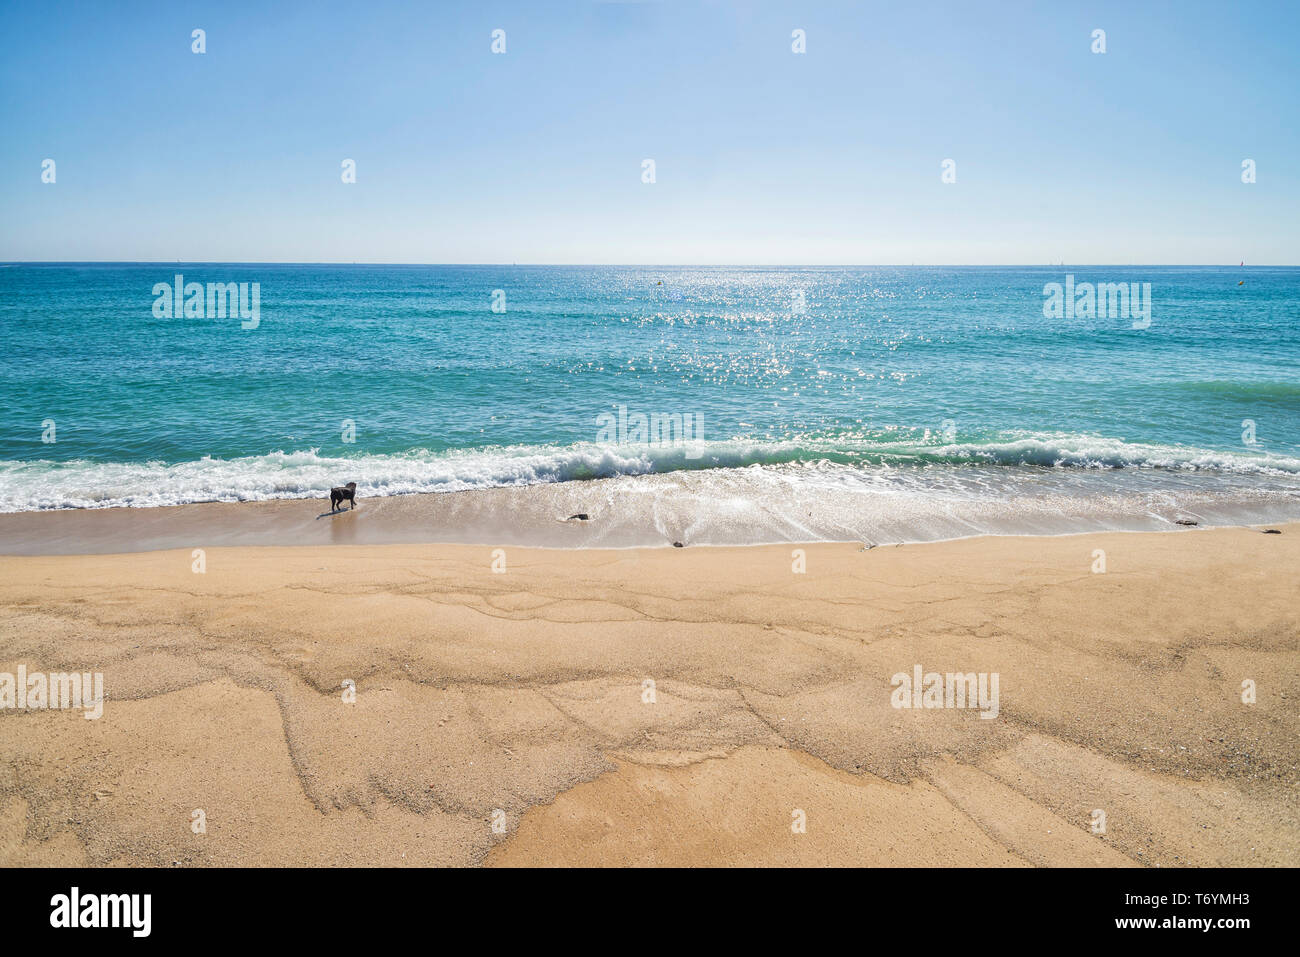 Front view of a dog enjoying with waves at seashore in a sunny day Stock Photo